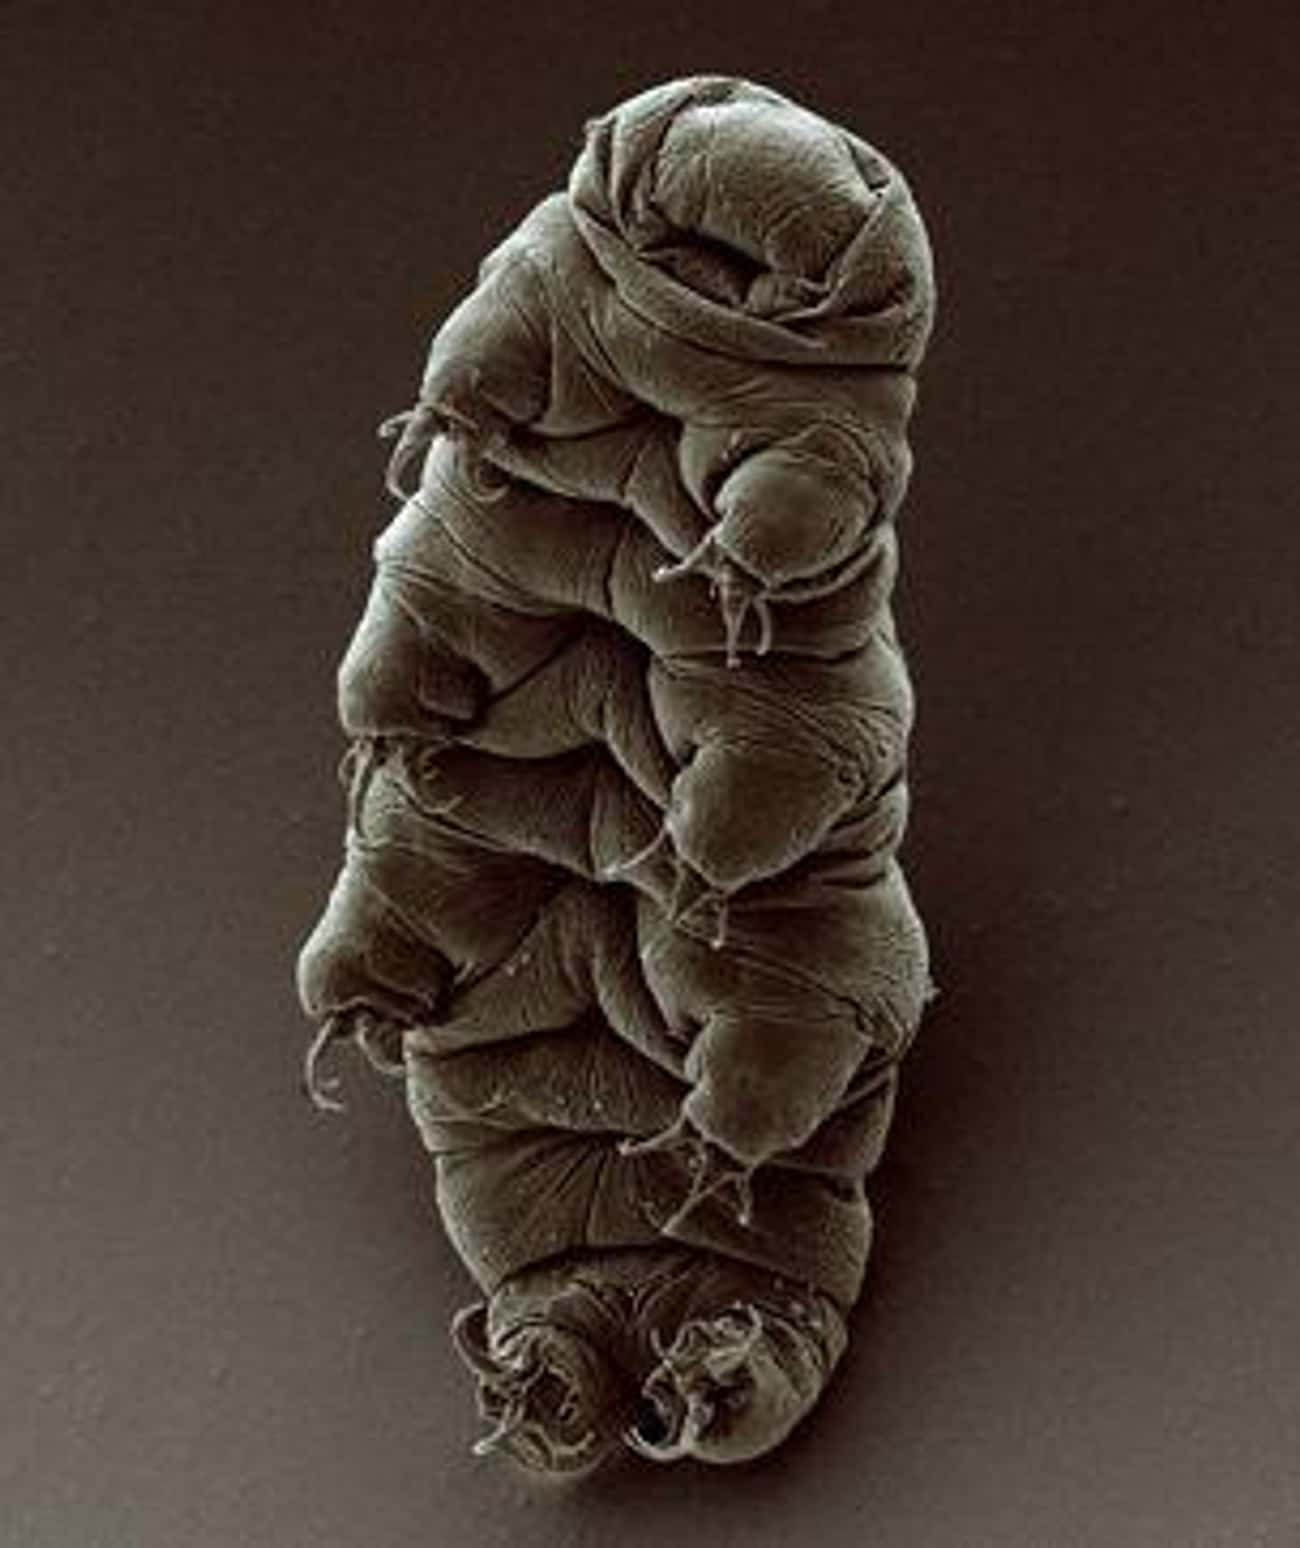 Tardigrades Are The Hardiest C is listed (or ranked) 2 on the list Animal Facts That Sound Fake, But Are 100% Legit